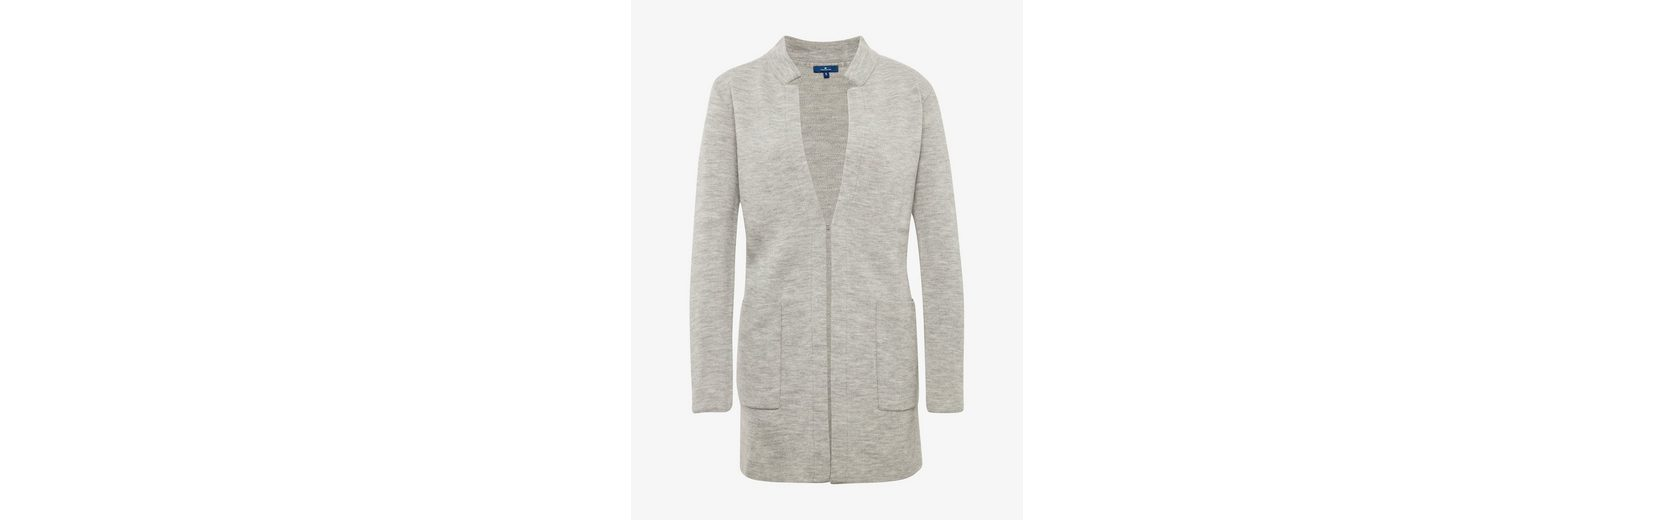 Tom Tailor Cardigan Coatigan in Melange-Optik Steckdose Zuverlässig WpGTEr04k